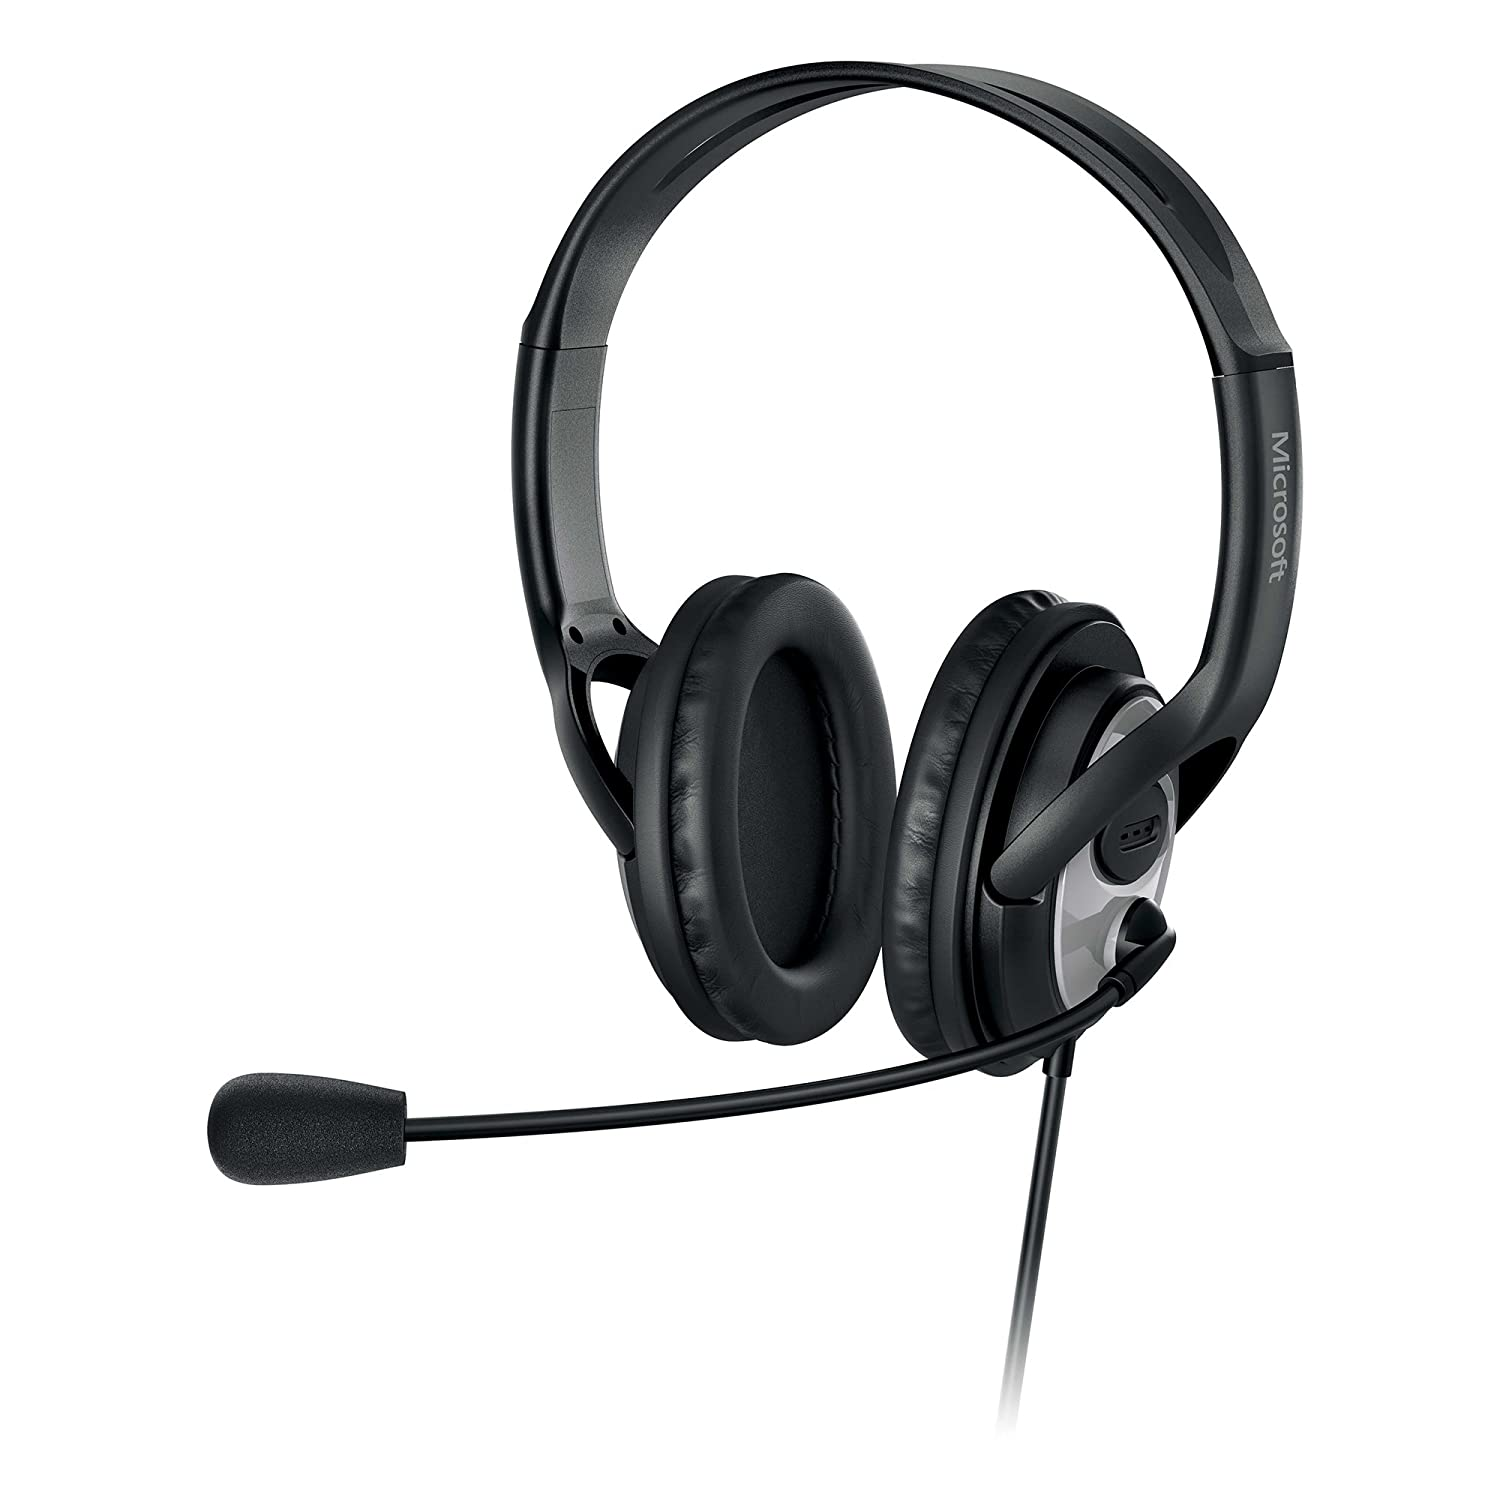 Microsoft LifeChat Headset - JUG-00016 Microsoft - Hardware MP3 & Media Player Accessories